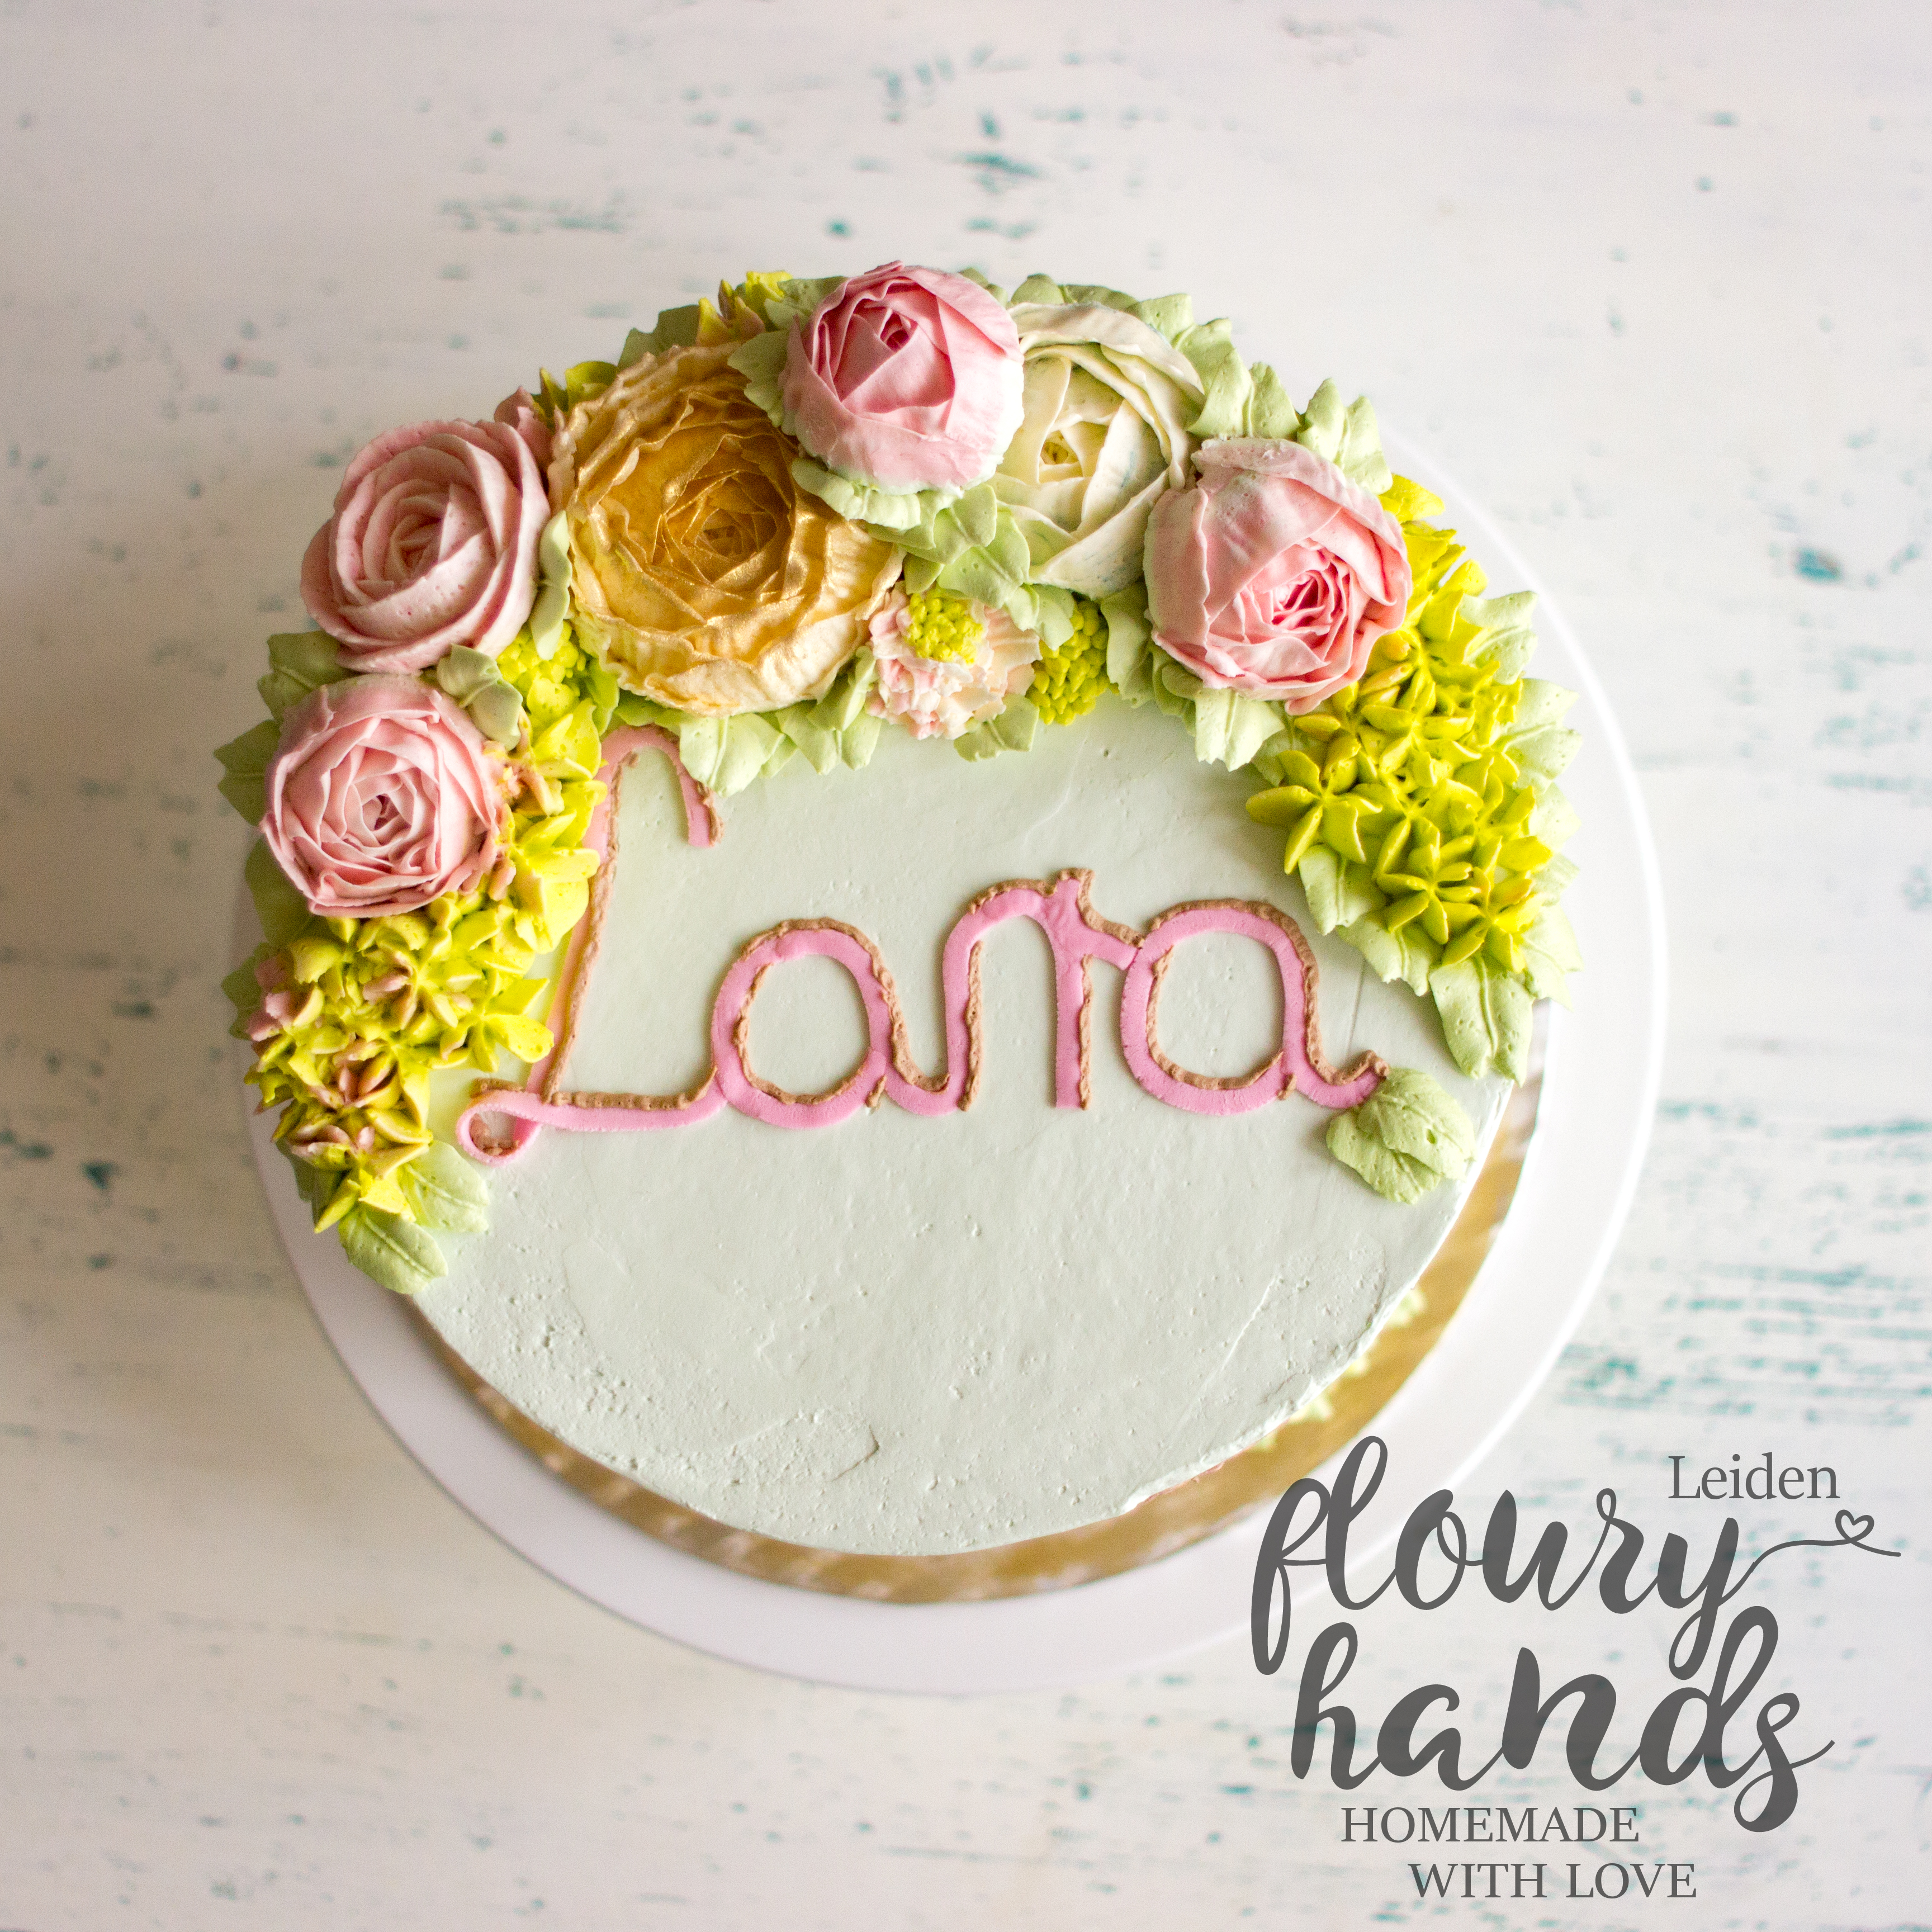 Horse Themed Cake With Buttercream Flowers Floury Hands